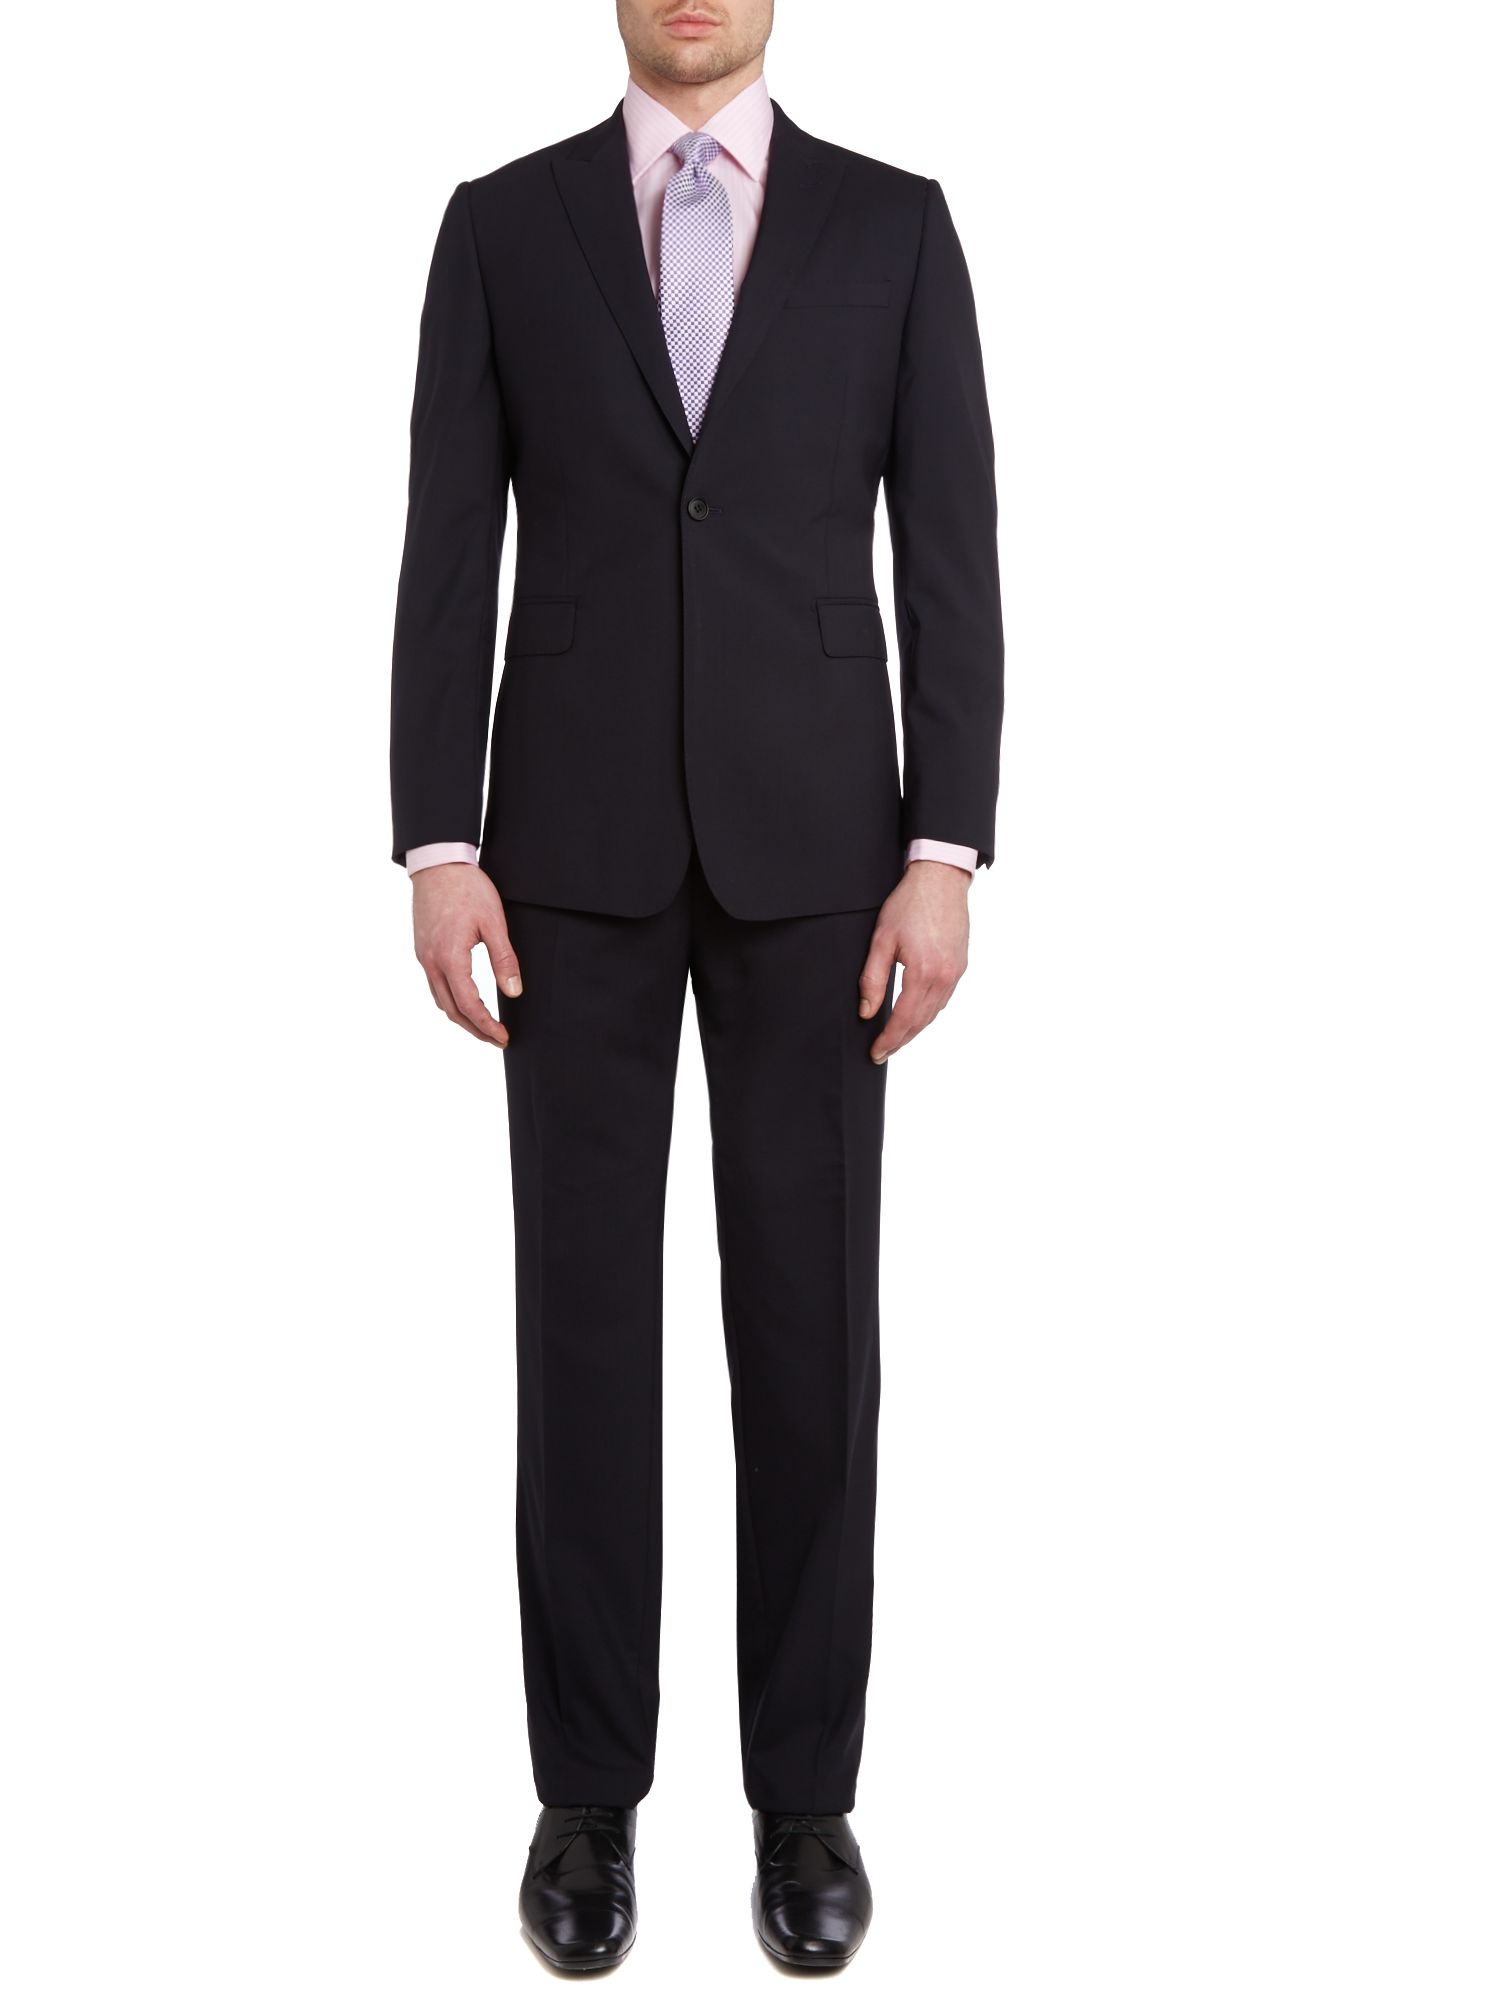 Contemporary cocktail suit